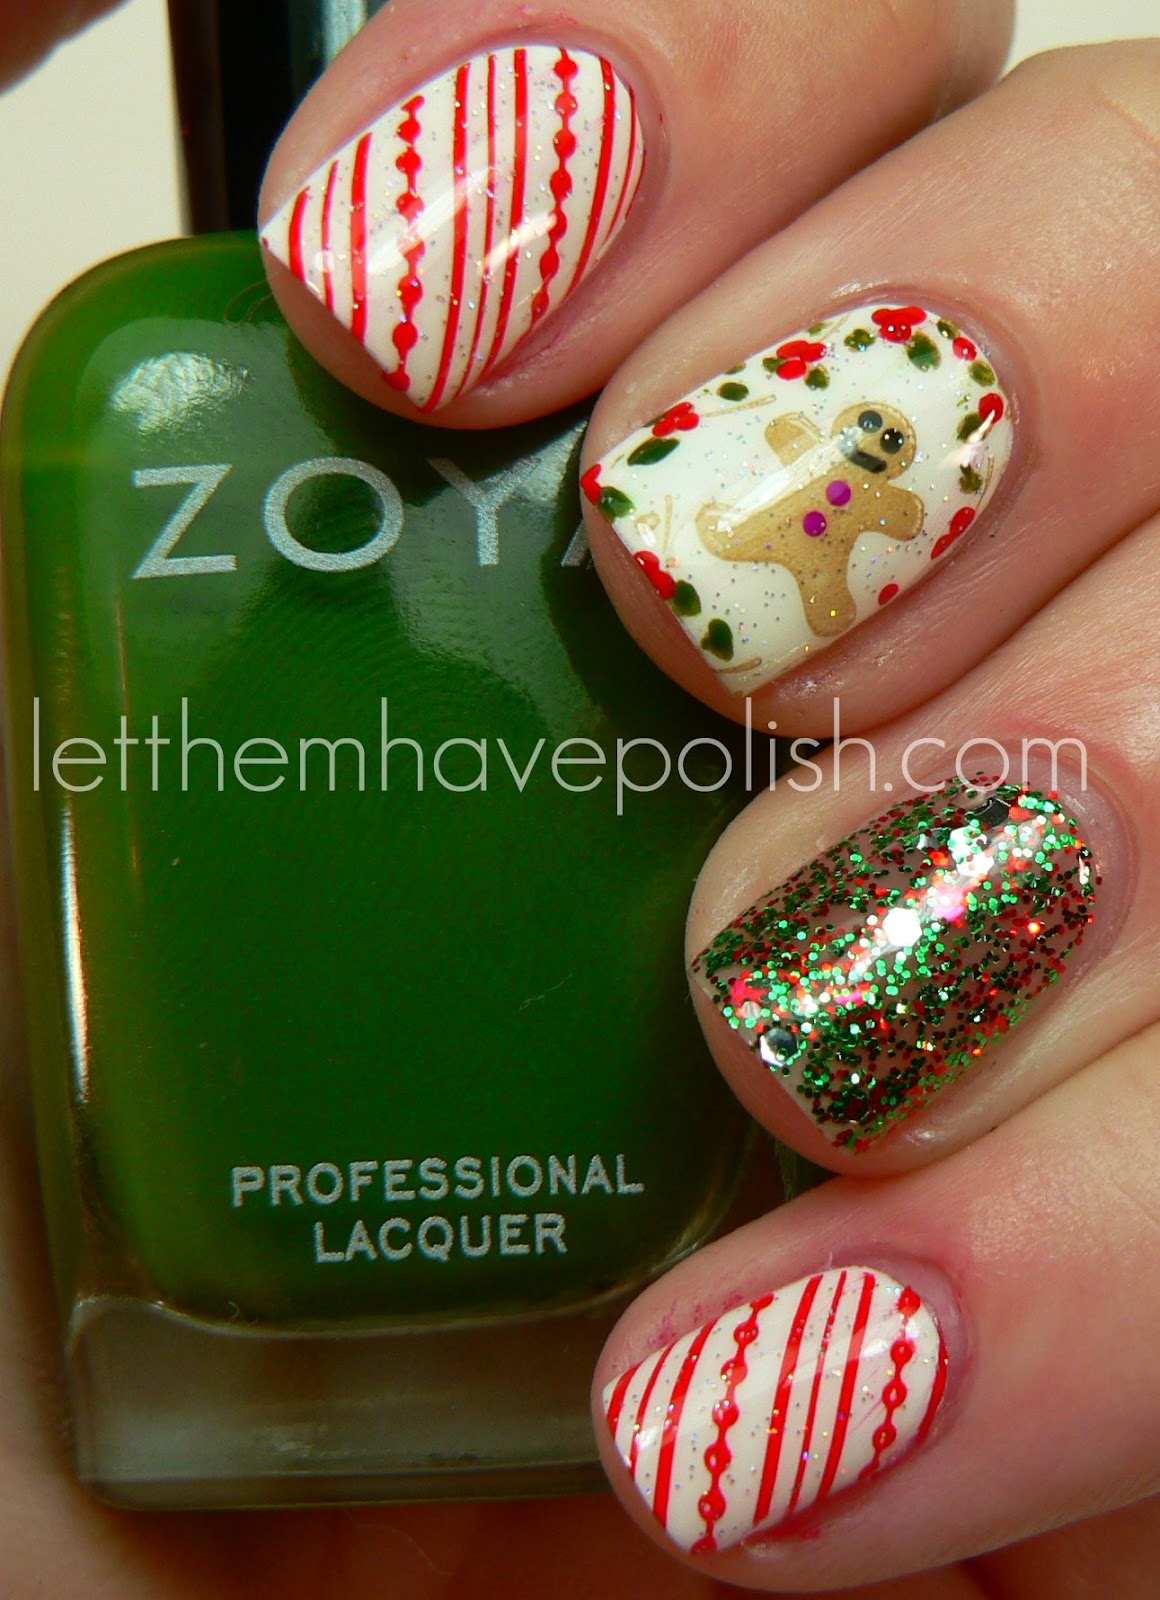 Christmas Nail Art French Manicure Red With White: Let Them Have Polish!: Holiday Cuteness With Zoya Nail Polish